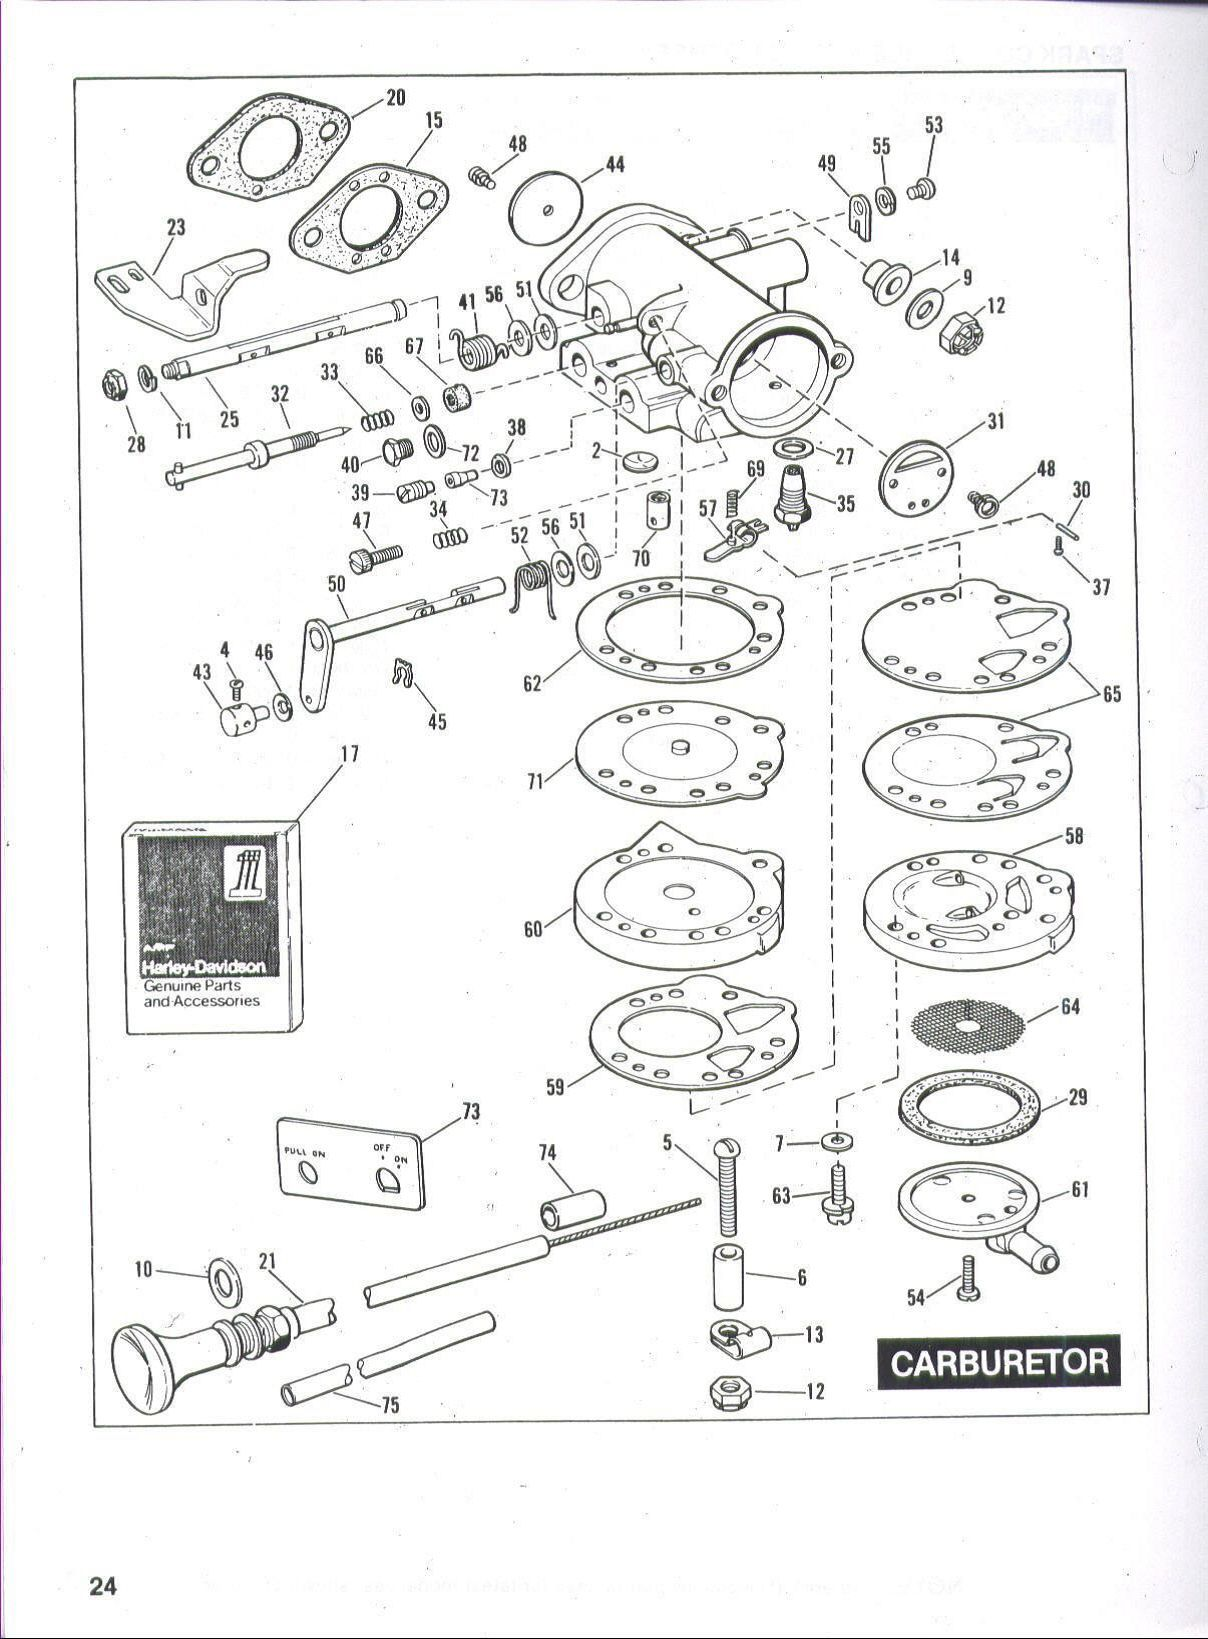 5176dbb44702a1adc4080edf7301936d harley davidson golf cart carburetor diagram utv stuff westinghouse golf cart wiring diagram at bakdesigns.co